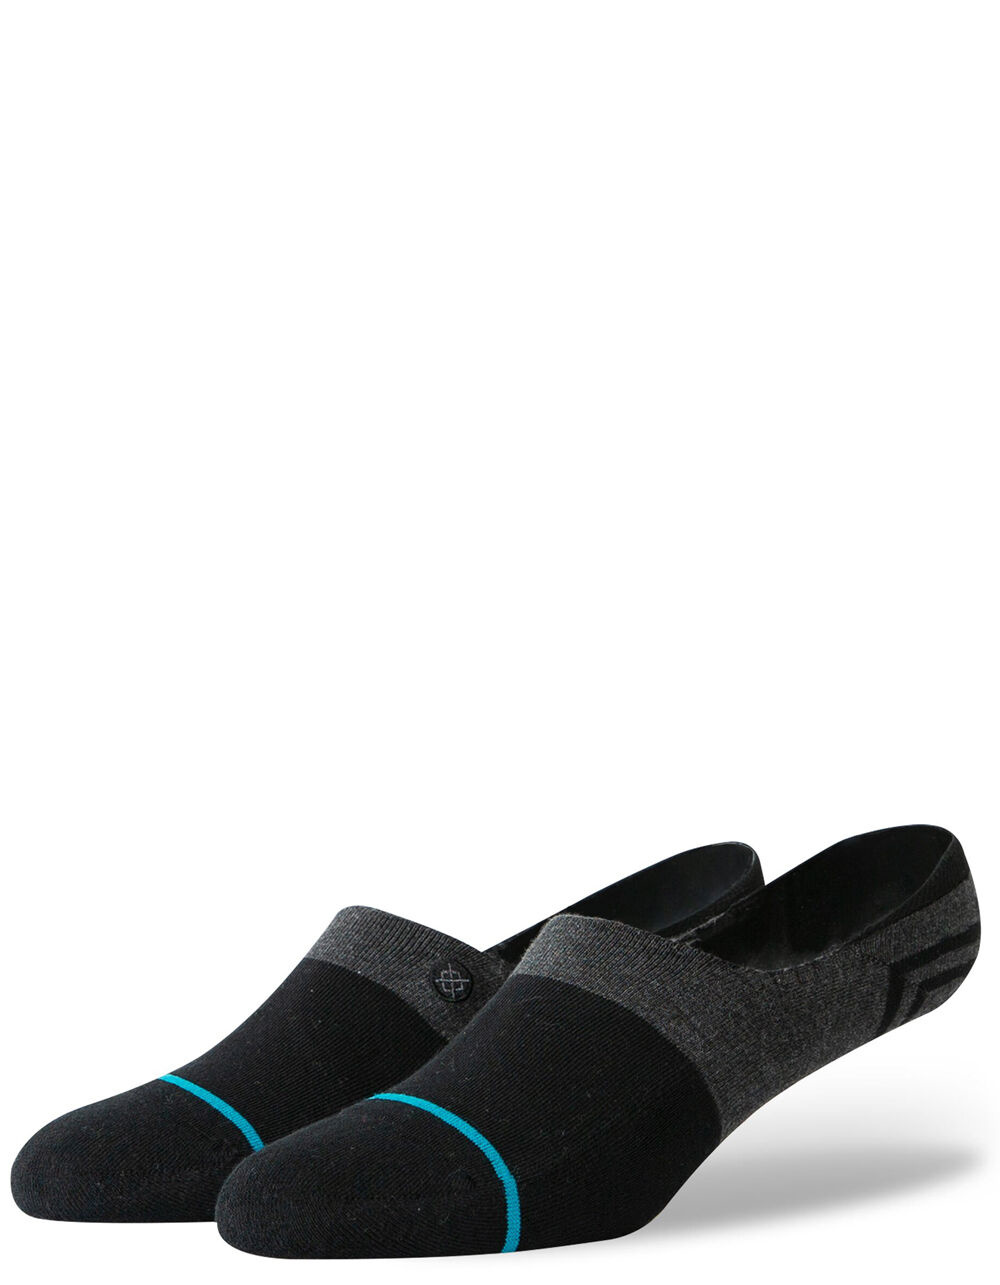 STANCE STANCE SOCKS GAMUT II 3 PACK BLACK LARGE